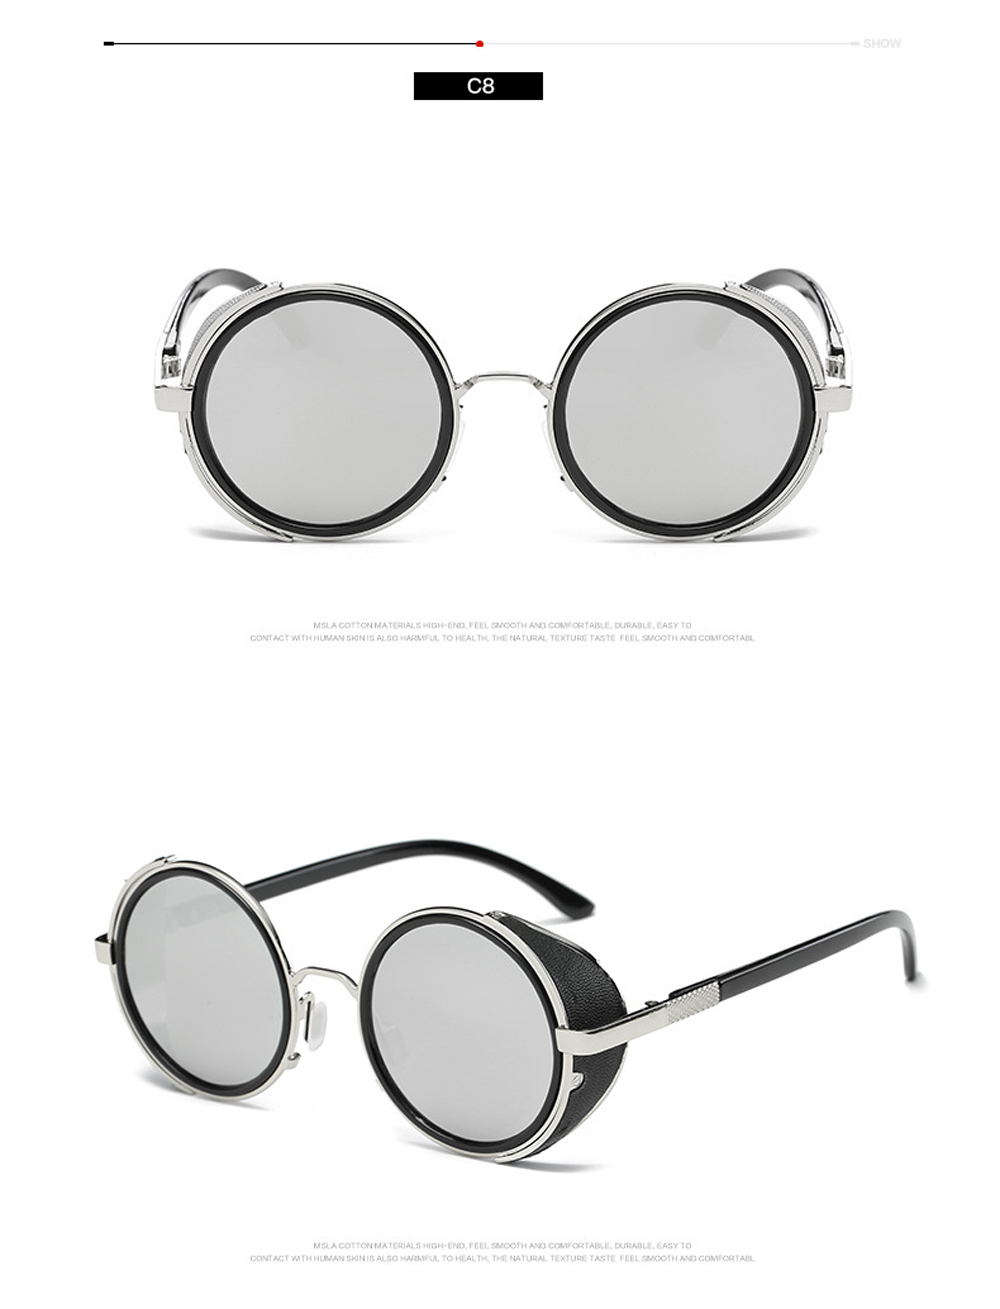 Steampunk Sunglasses Women Round Glasses Goggles Men Side Visor Circle Lens Unisex Vintage Retro Style Punk Oculos De Sol